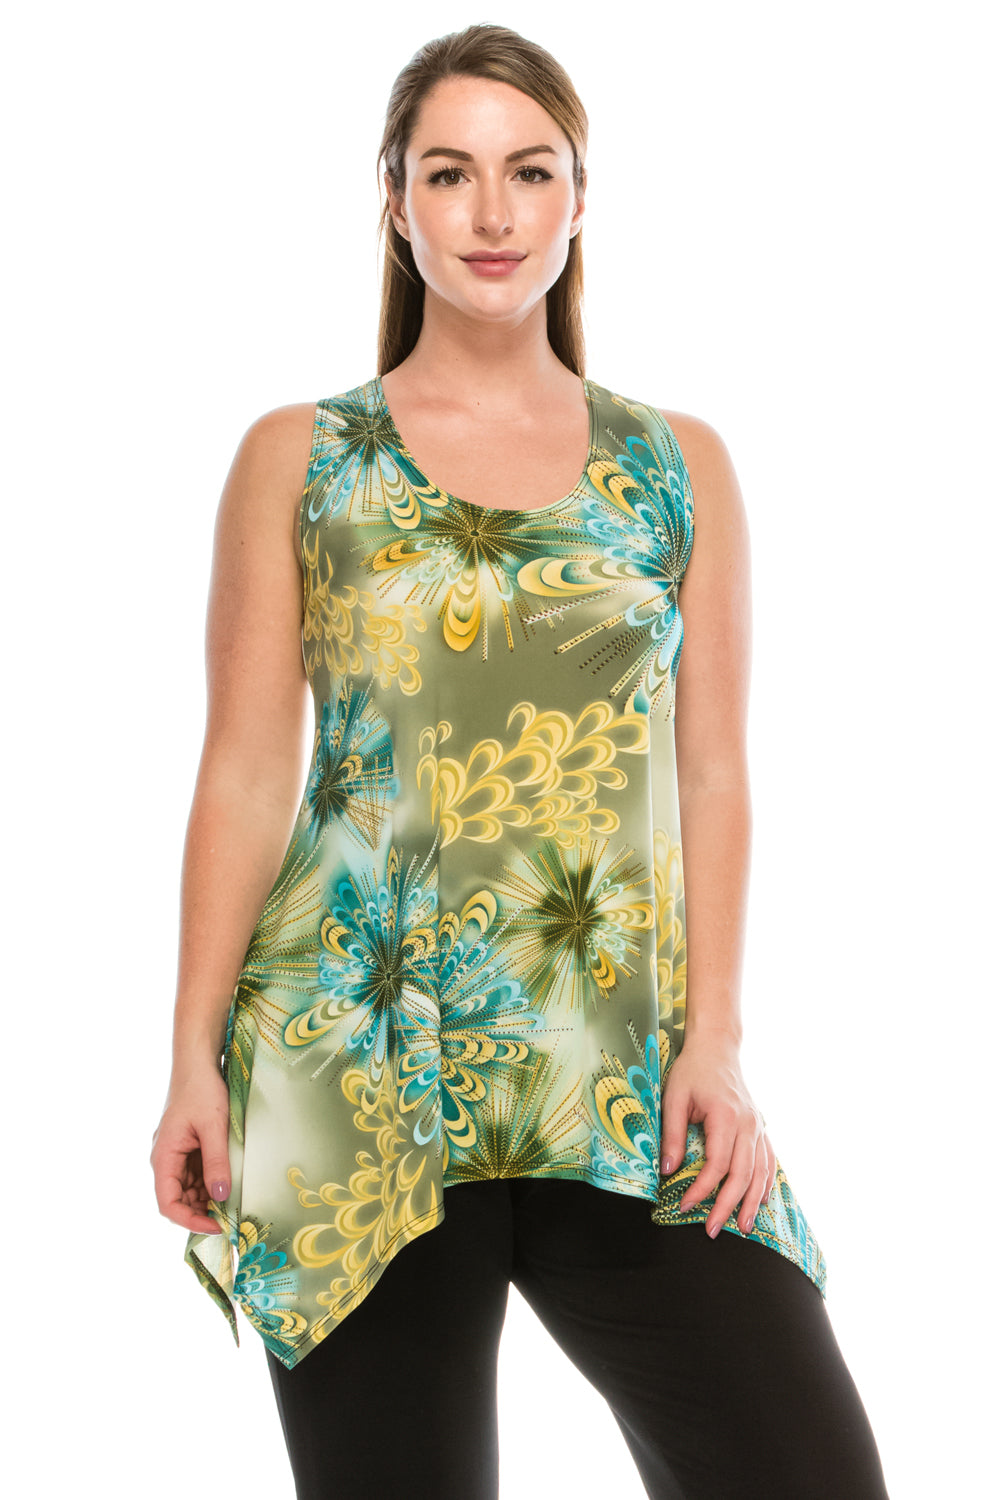 Jostar Women's HIT Side Drop Tank Tunic Plus Print, 230HT-TXP-W124 - Jostar Online